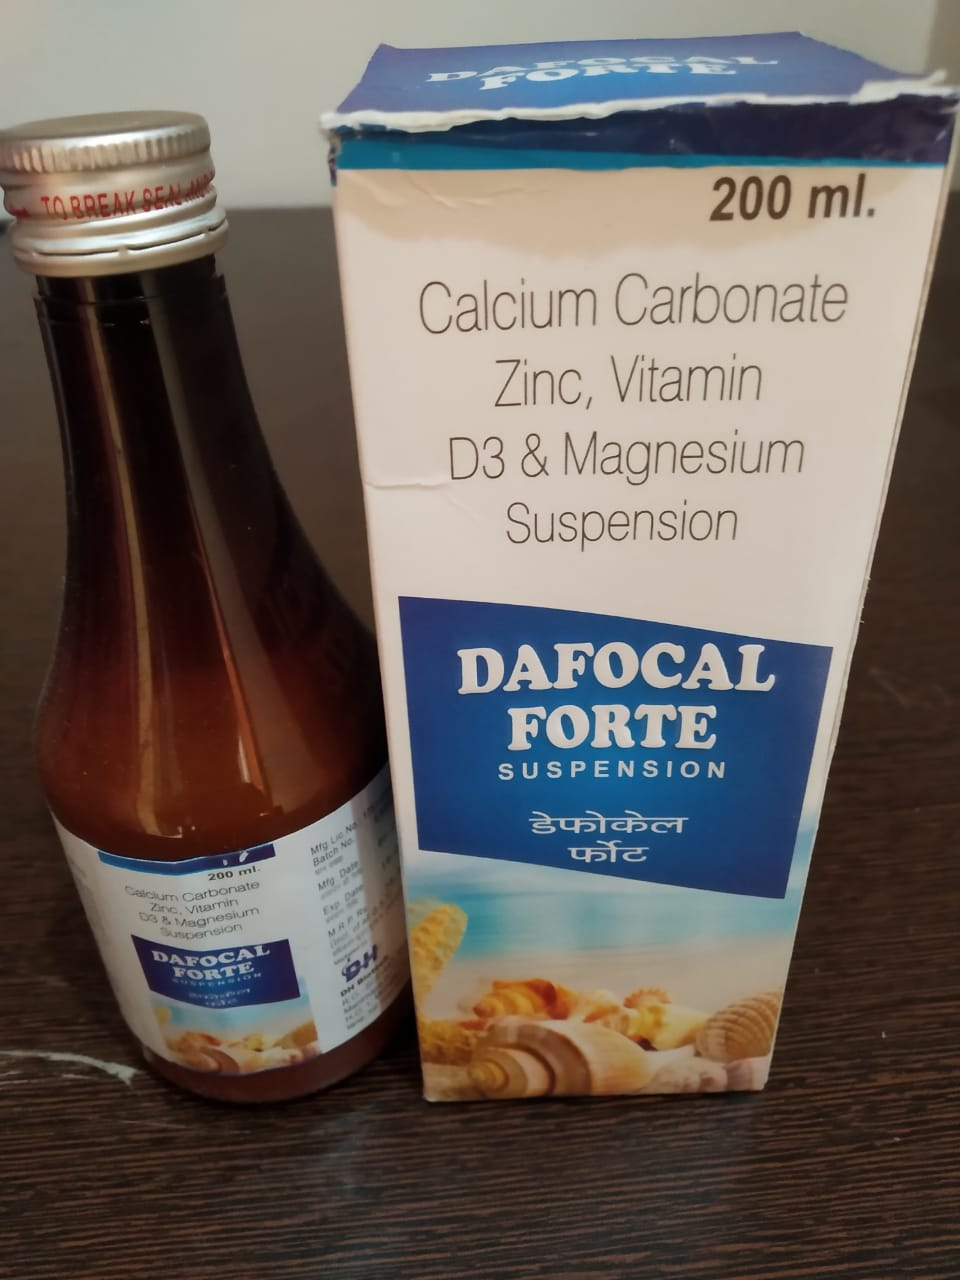 5-Dafocal-Forte-Suspension-Calcium-Carbonate-Zinc-Vitamin-D3-Magnesium-Suspension-DH-Kritical-Care-Best-PCD-Pharma-Franchise-Company-Chandigarh